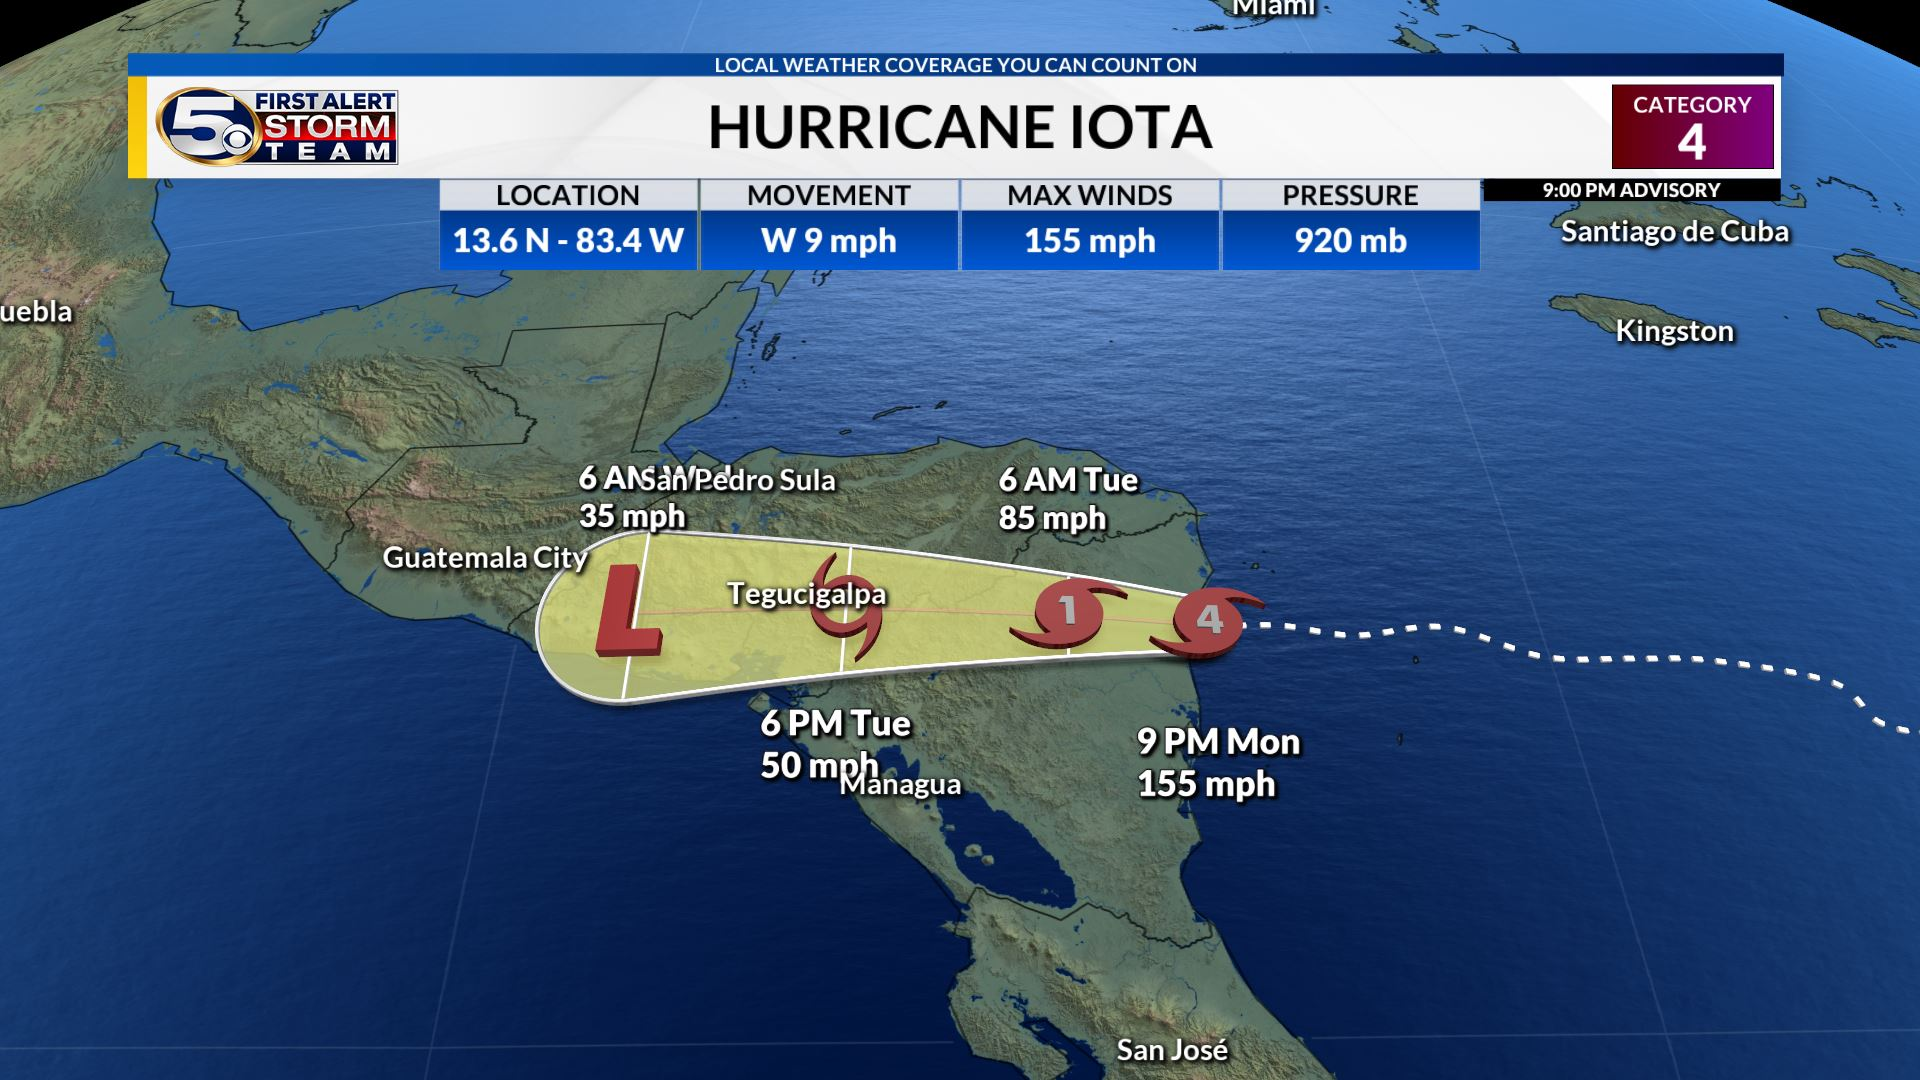 Hurricane Iota to Make Landfall Tonight in Nicaragua, the Second Major Hurricane in Two Weeks